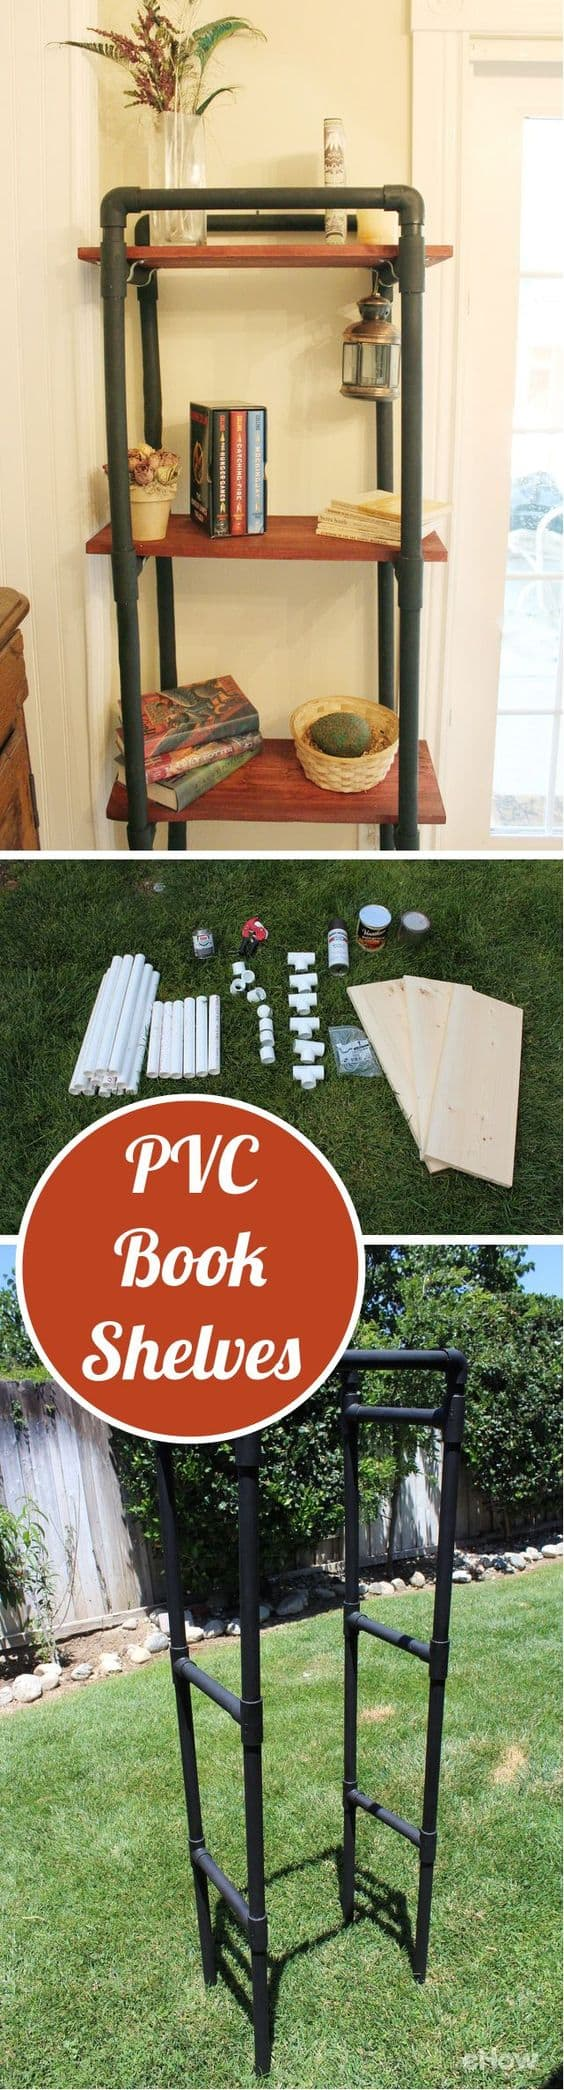 8 great DIY bookcases. Make awesome industrial look book shelves out of PVC.